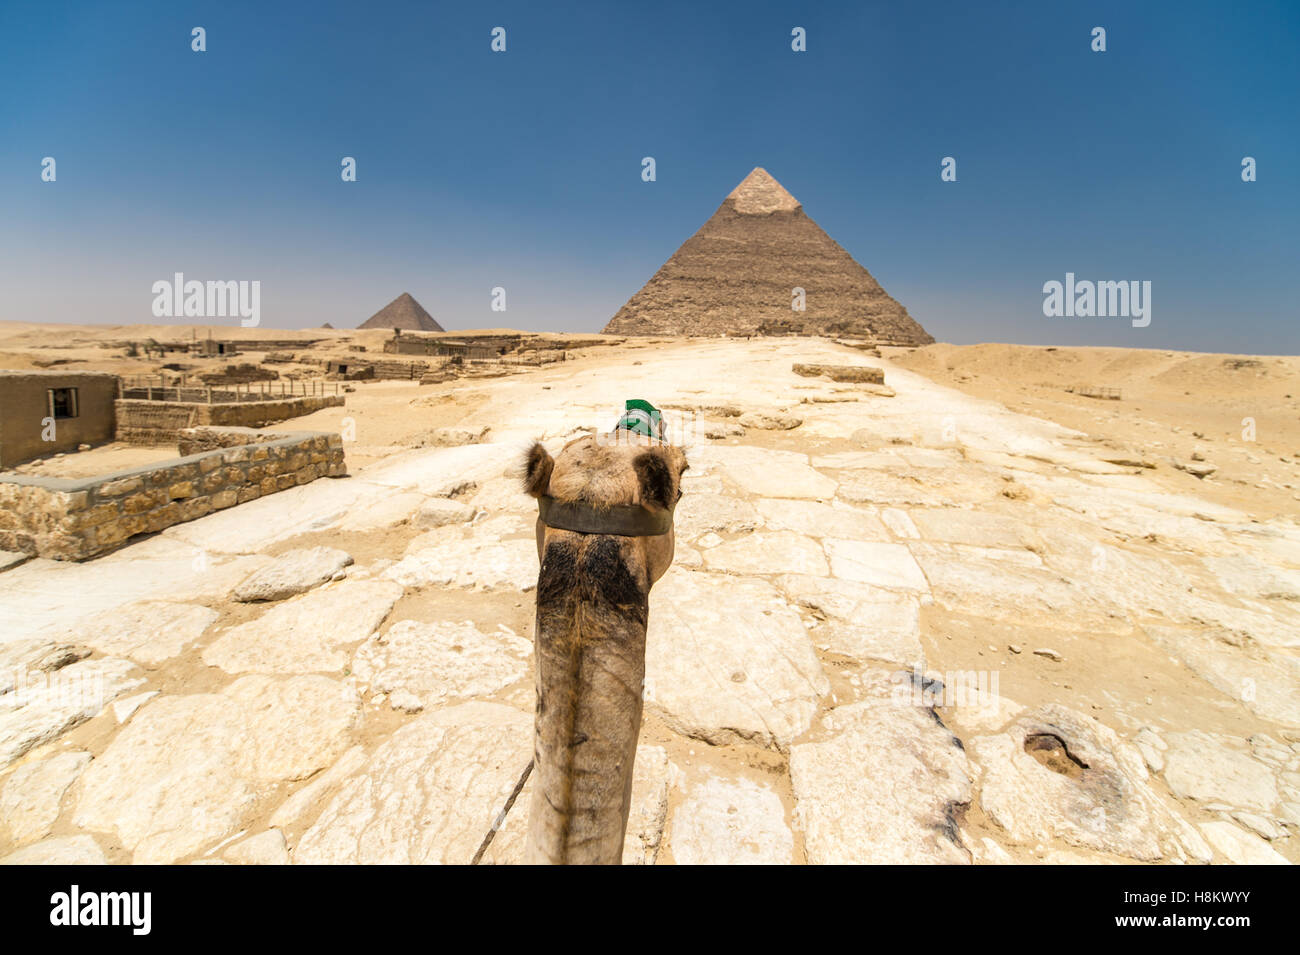 Cairo, Egypt Tourist riding a camel through the desert with the Great Pyramids of Giza in the background. These - Stock Image